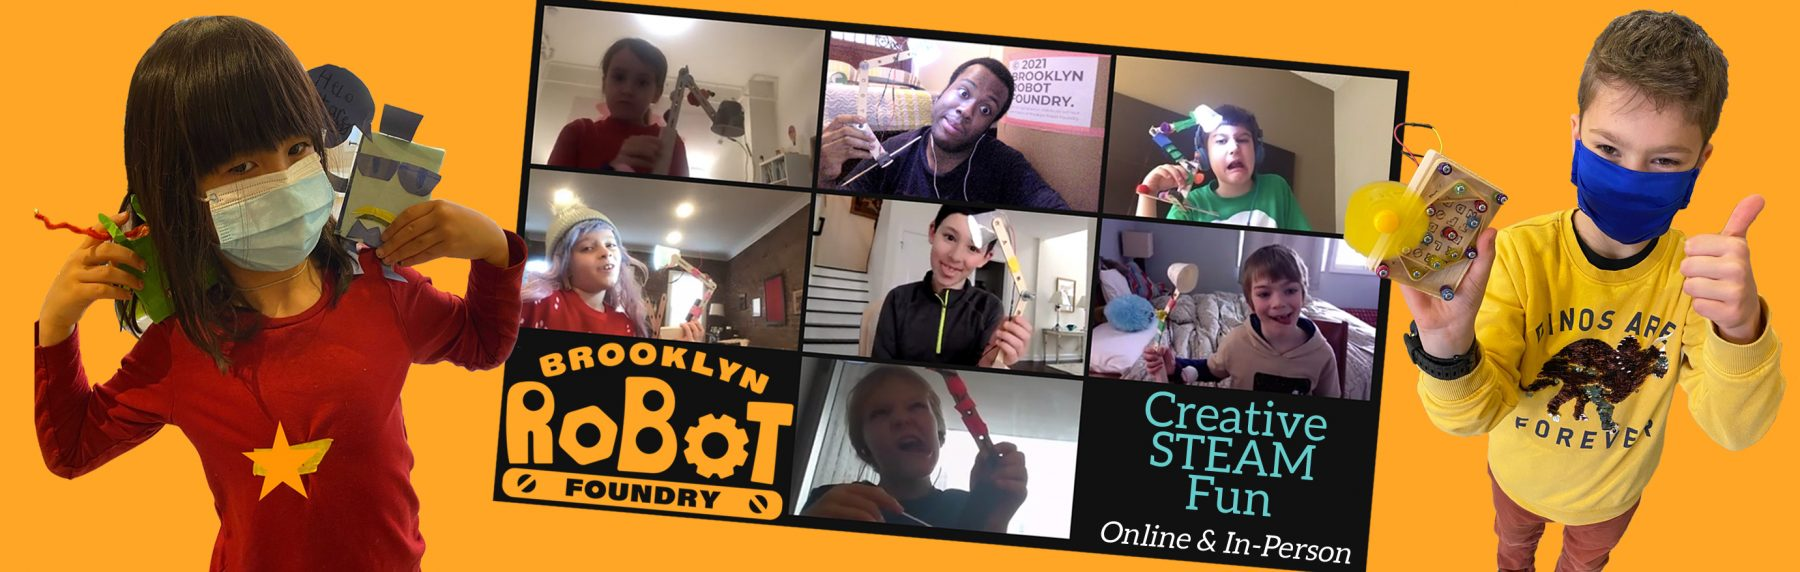 Brooklyn Robot Foundry Summer Camps